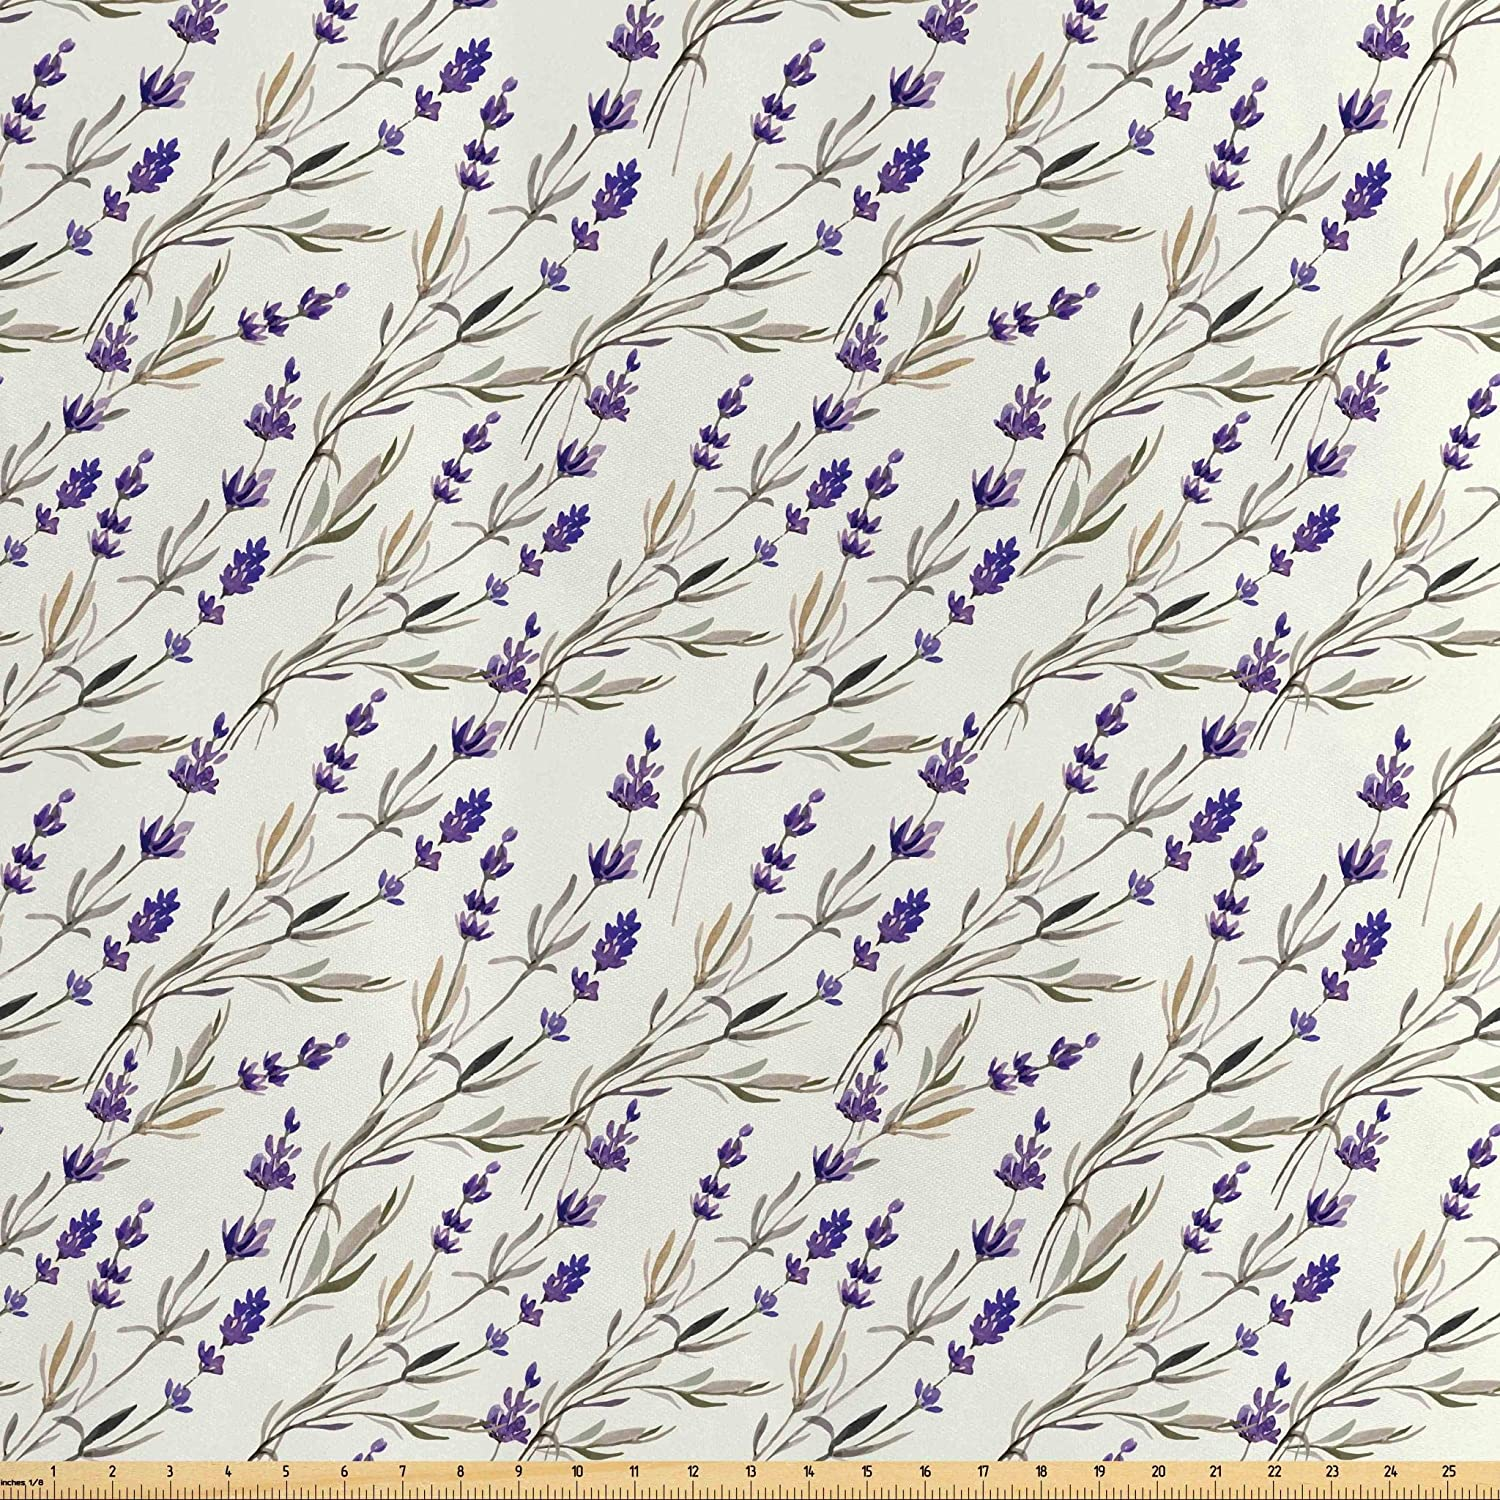 Lunarable Purple Fabric by The Yard, Lavender Paint Pattern French Fragrance Organic Herb Theme Country Cottage, Decorative Satin Fabric for Home Textiles and Crafts, 5 Yards, Violet Ivory Dust